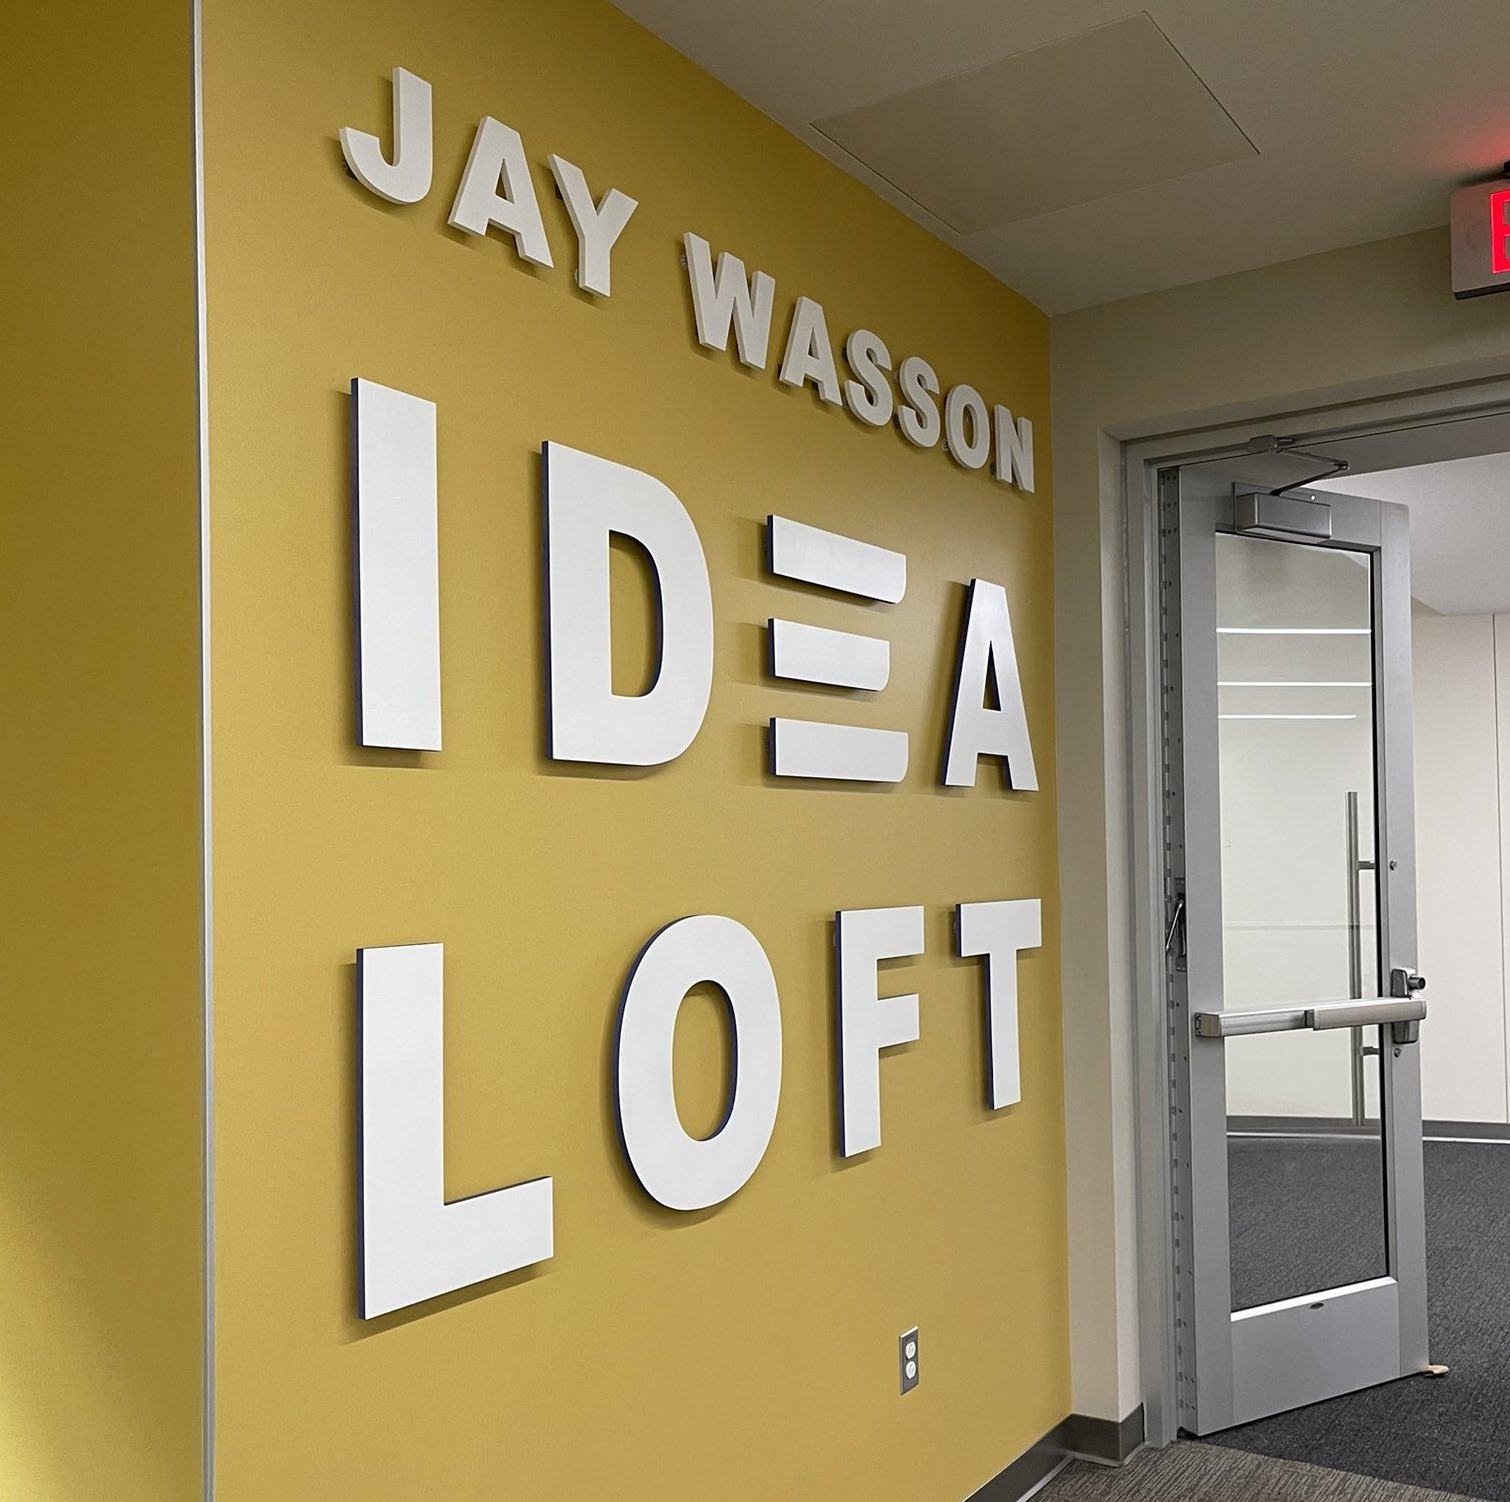 Jay Wasson supports efactory expansion